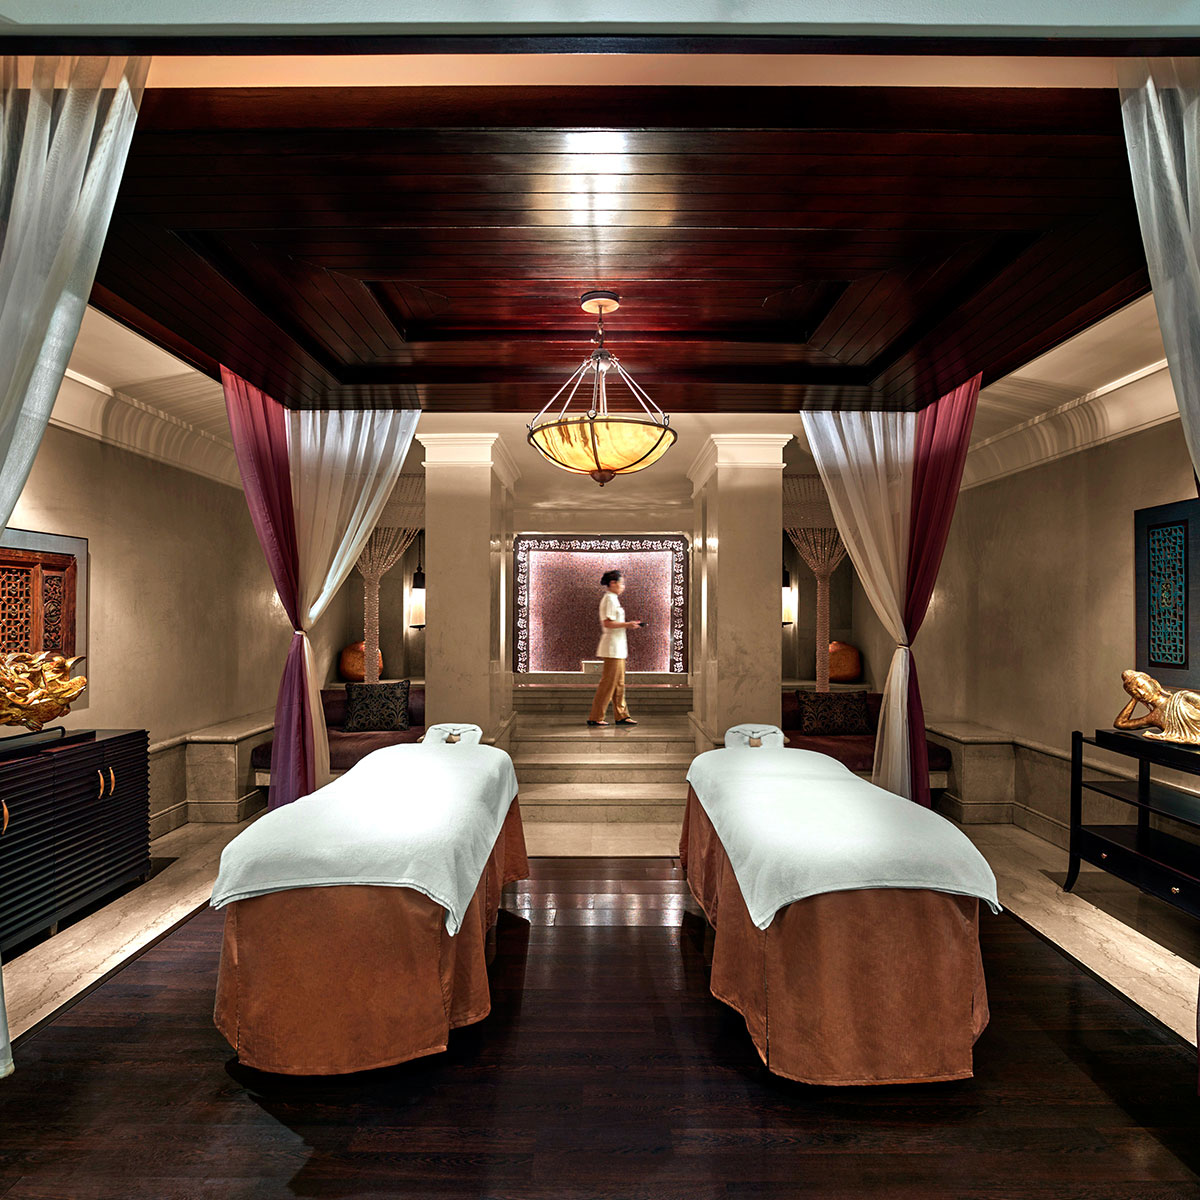 Mandara Spa at JW Marriott in New Cairo